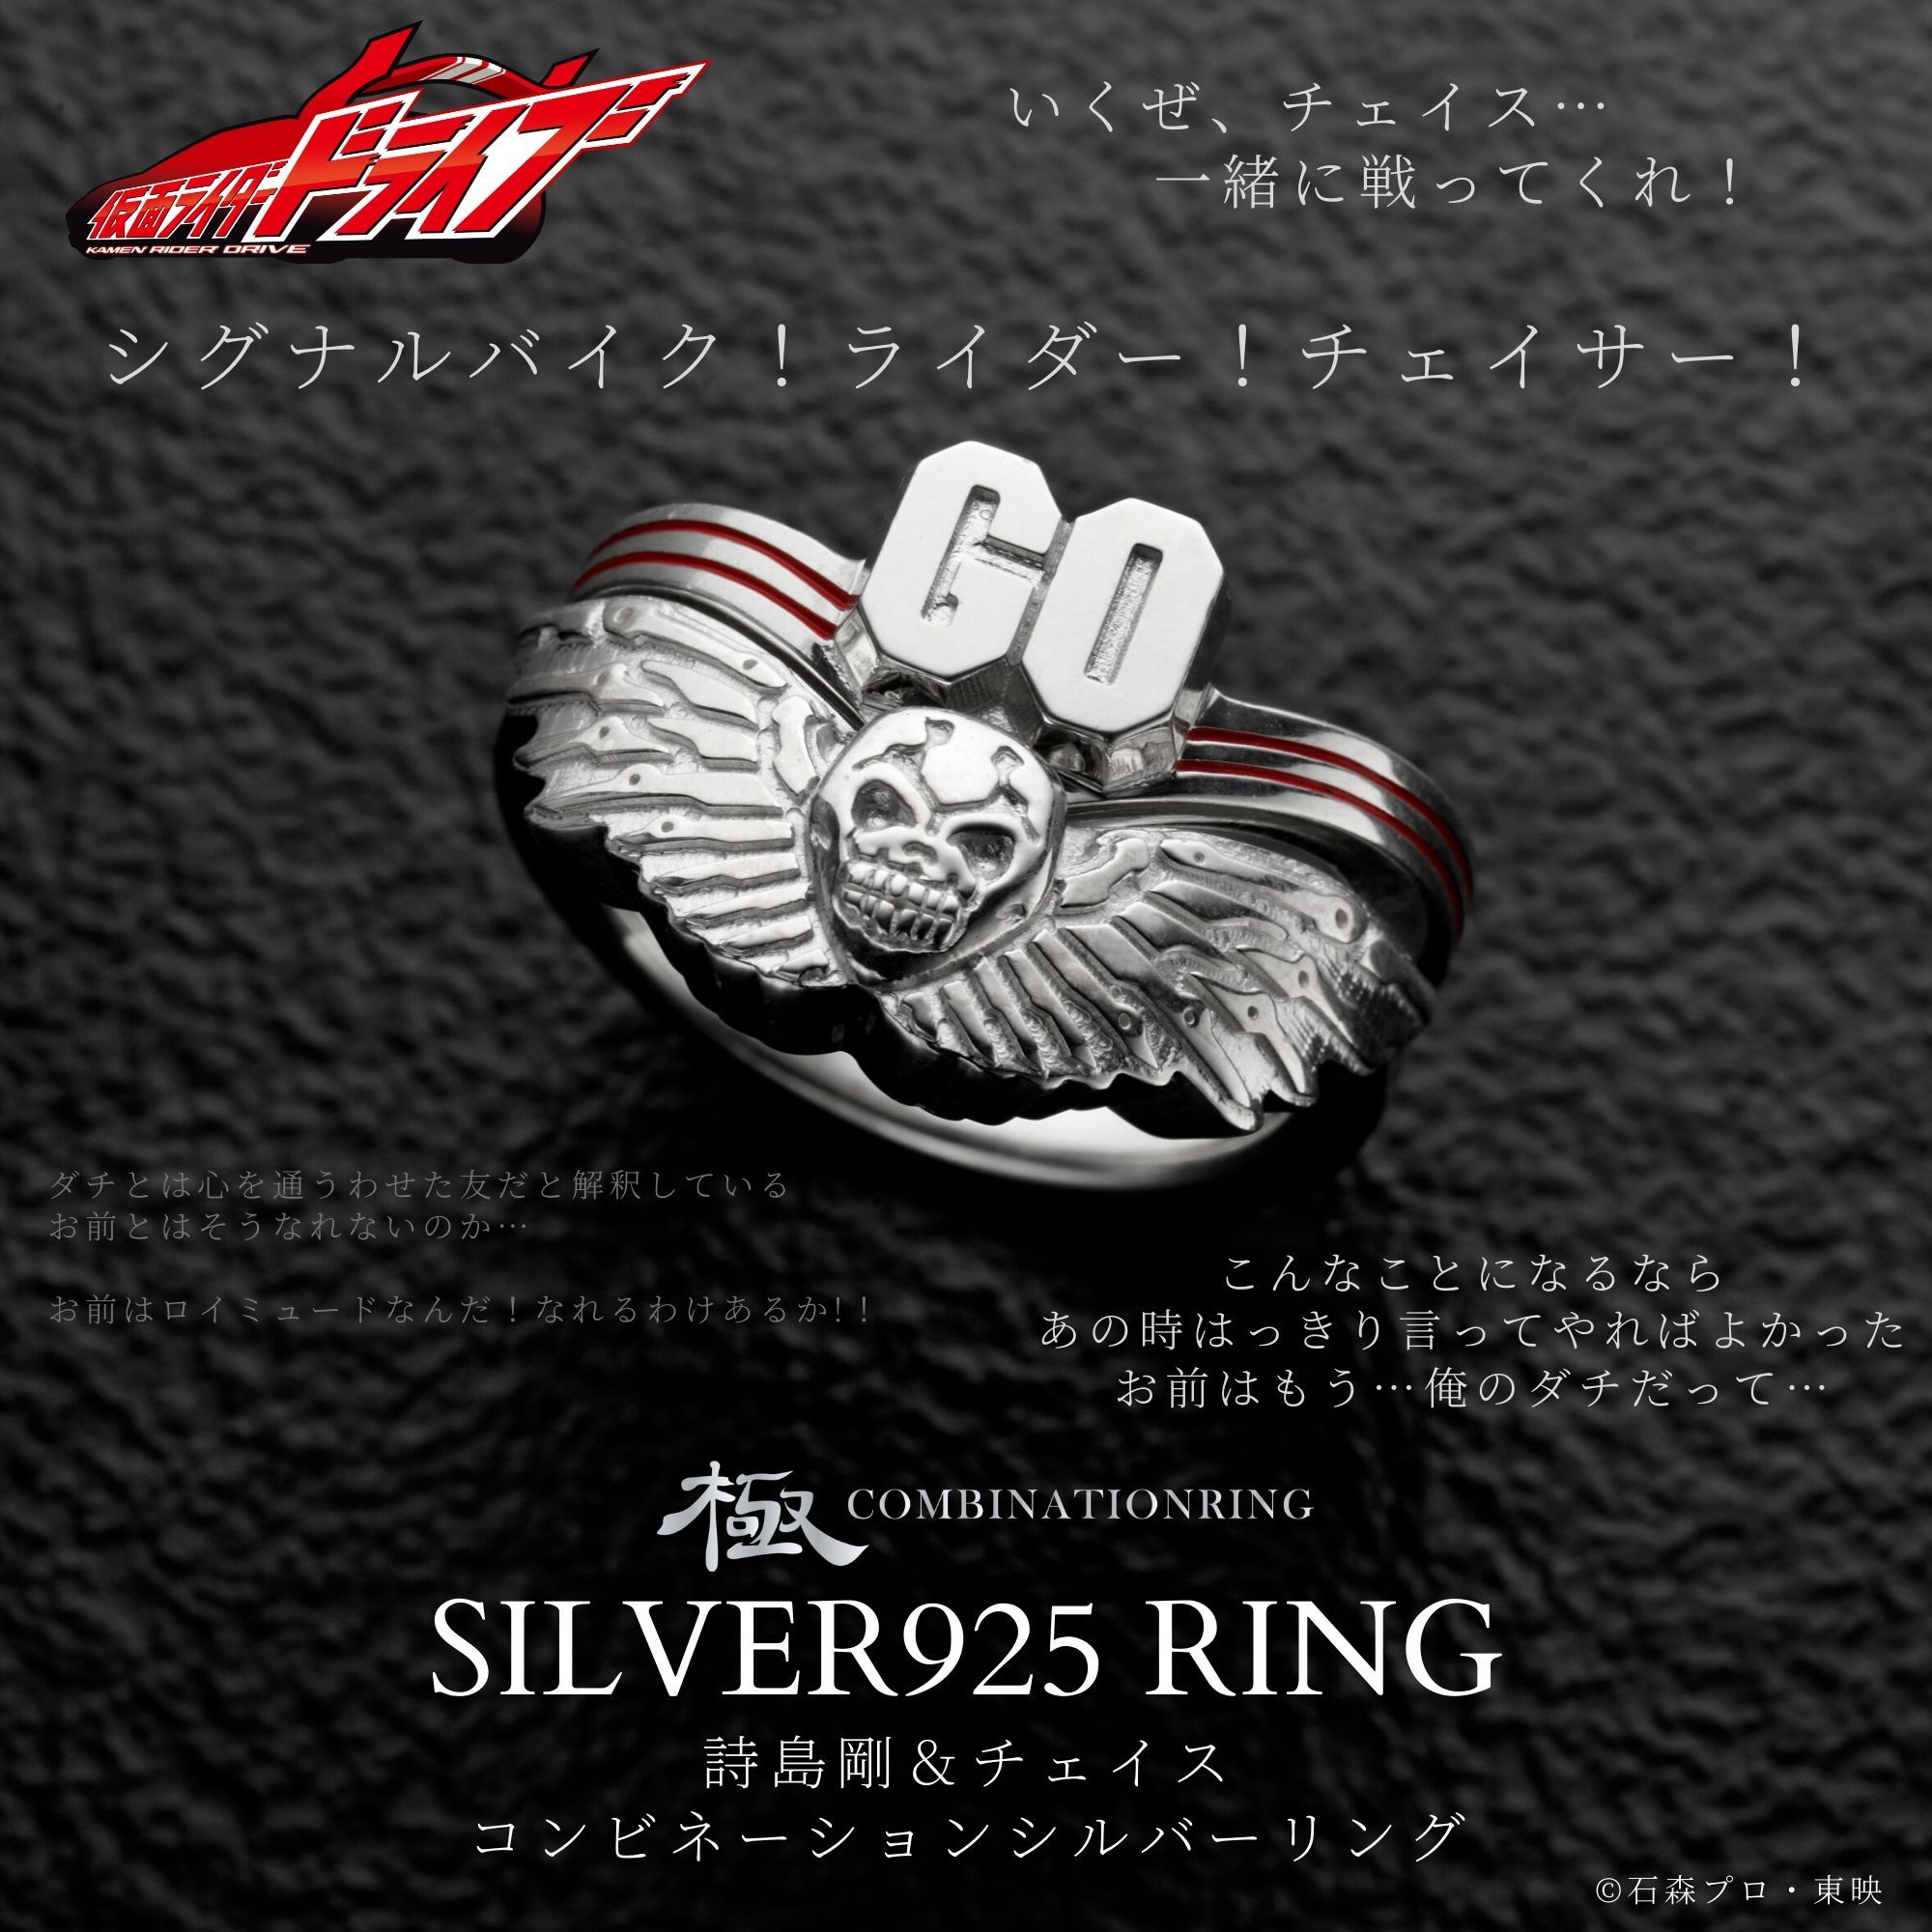 Go Shijima and Chase Combined Ring—Kamen Rider Drive